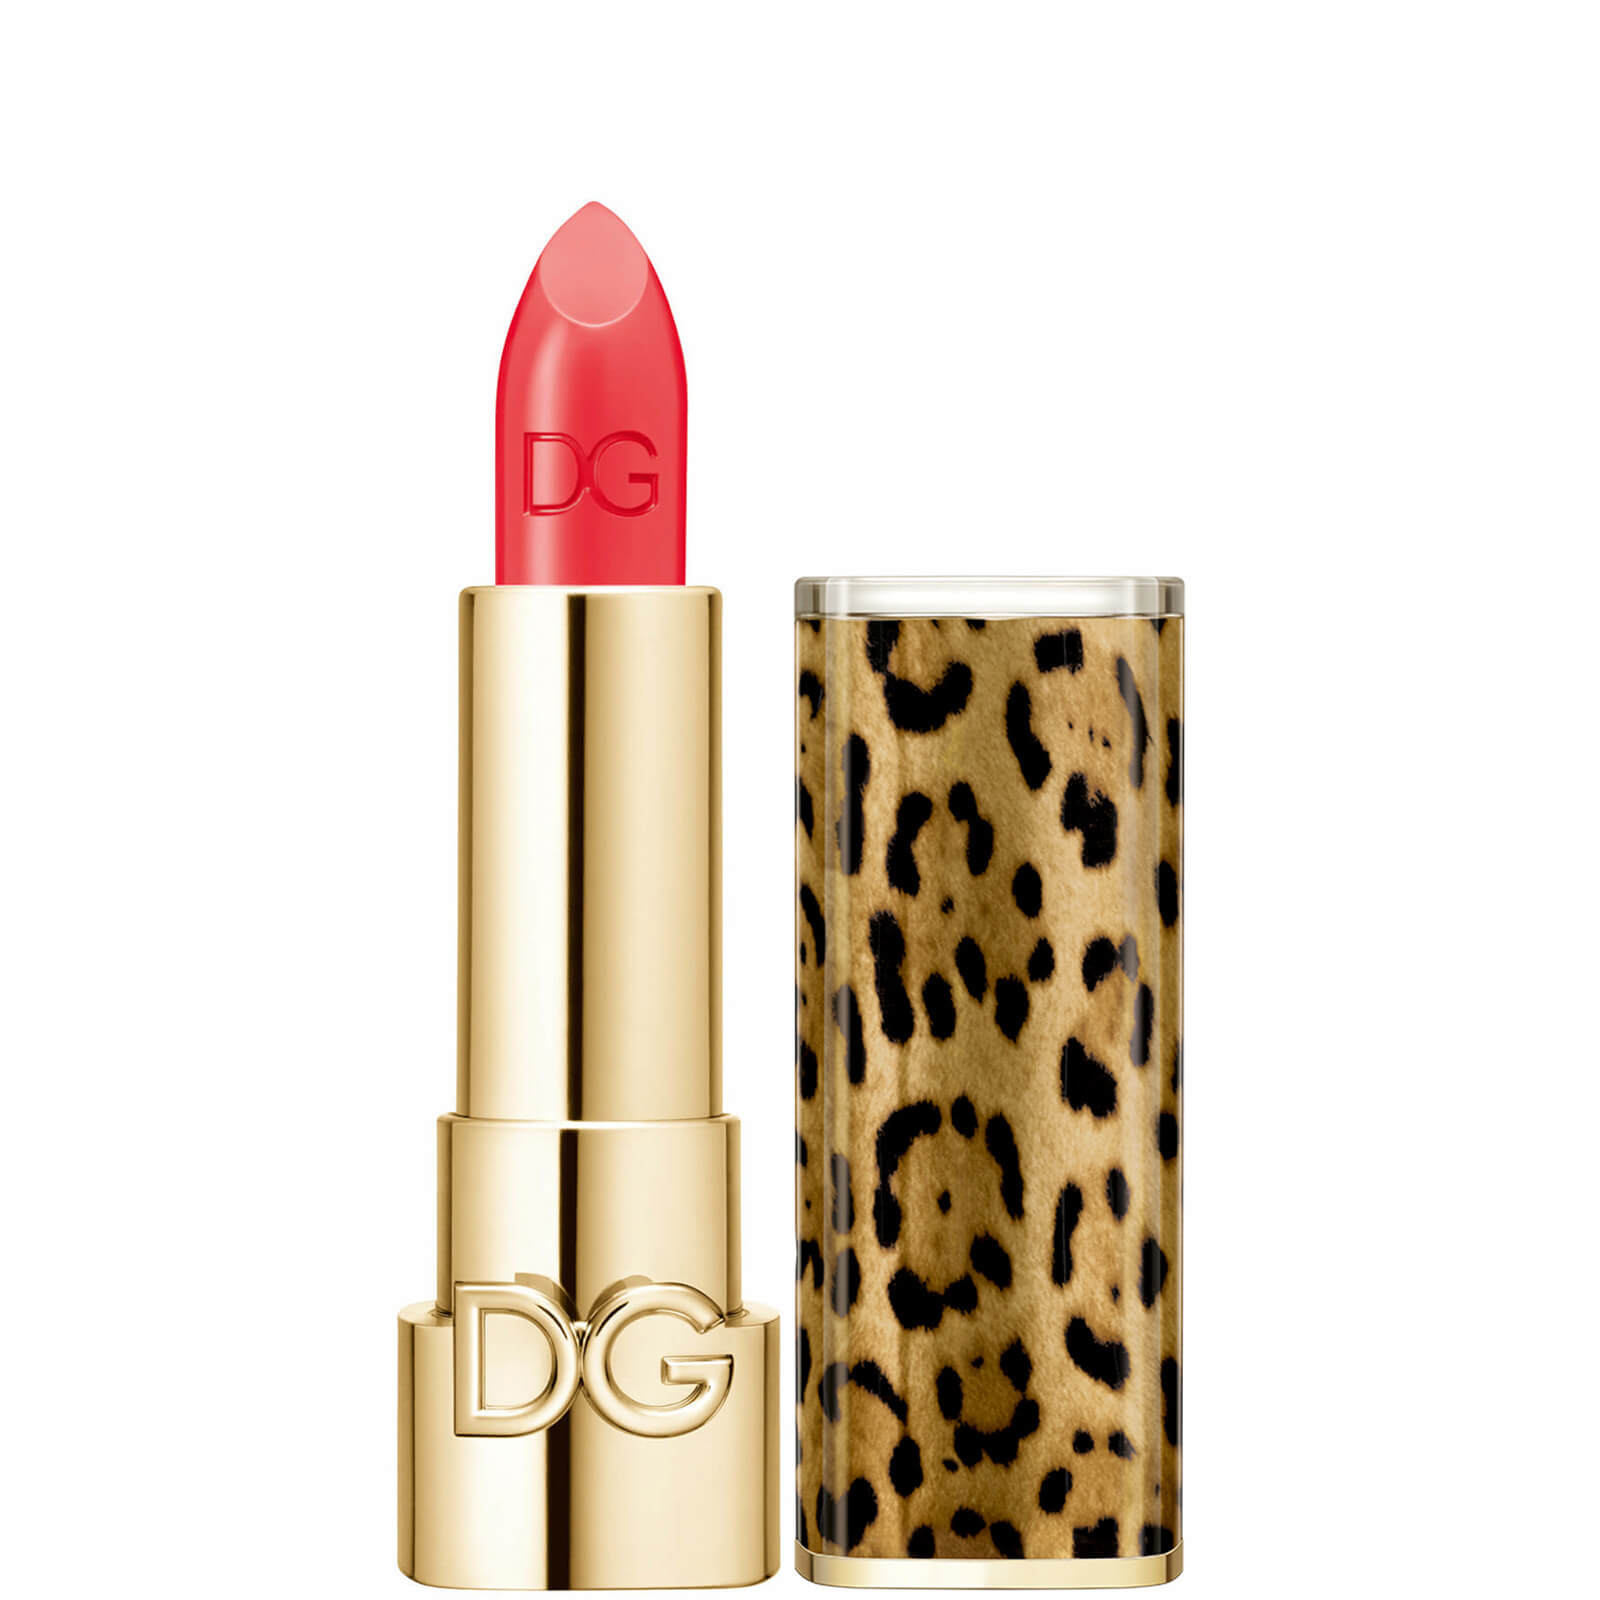 Dolce&Gabbana The Only One Lipstick + Cap (Animalier) (Various Shades) - 420 Coral Sunset